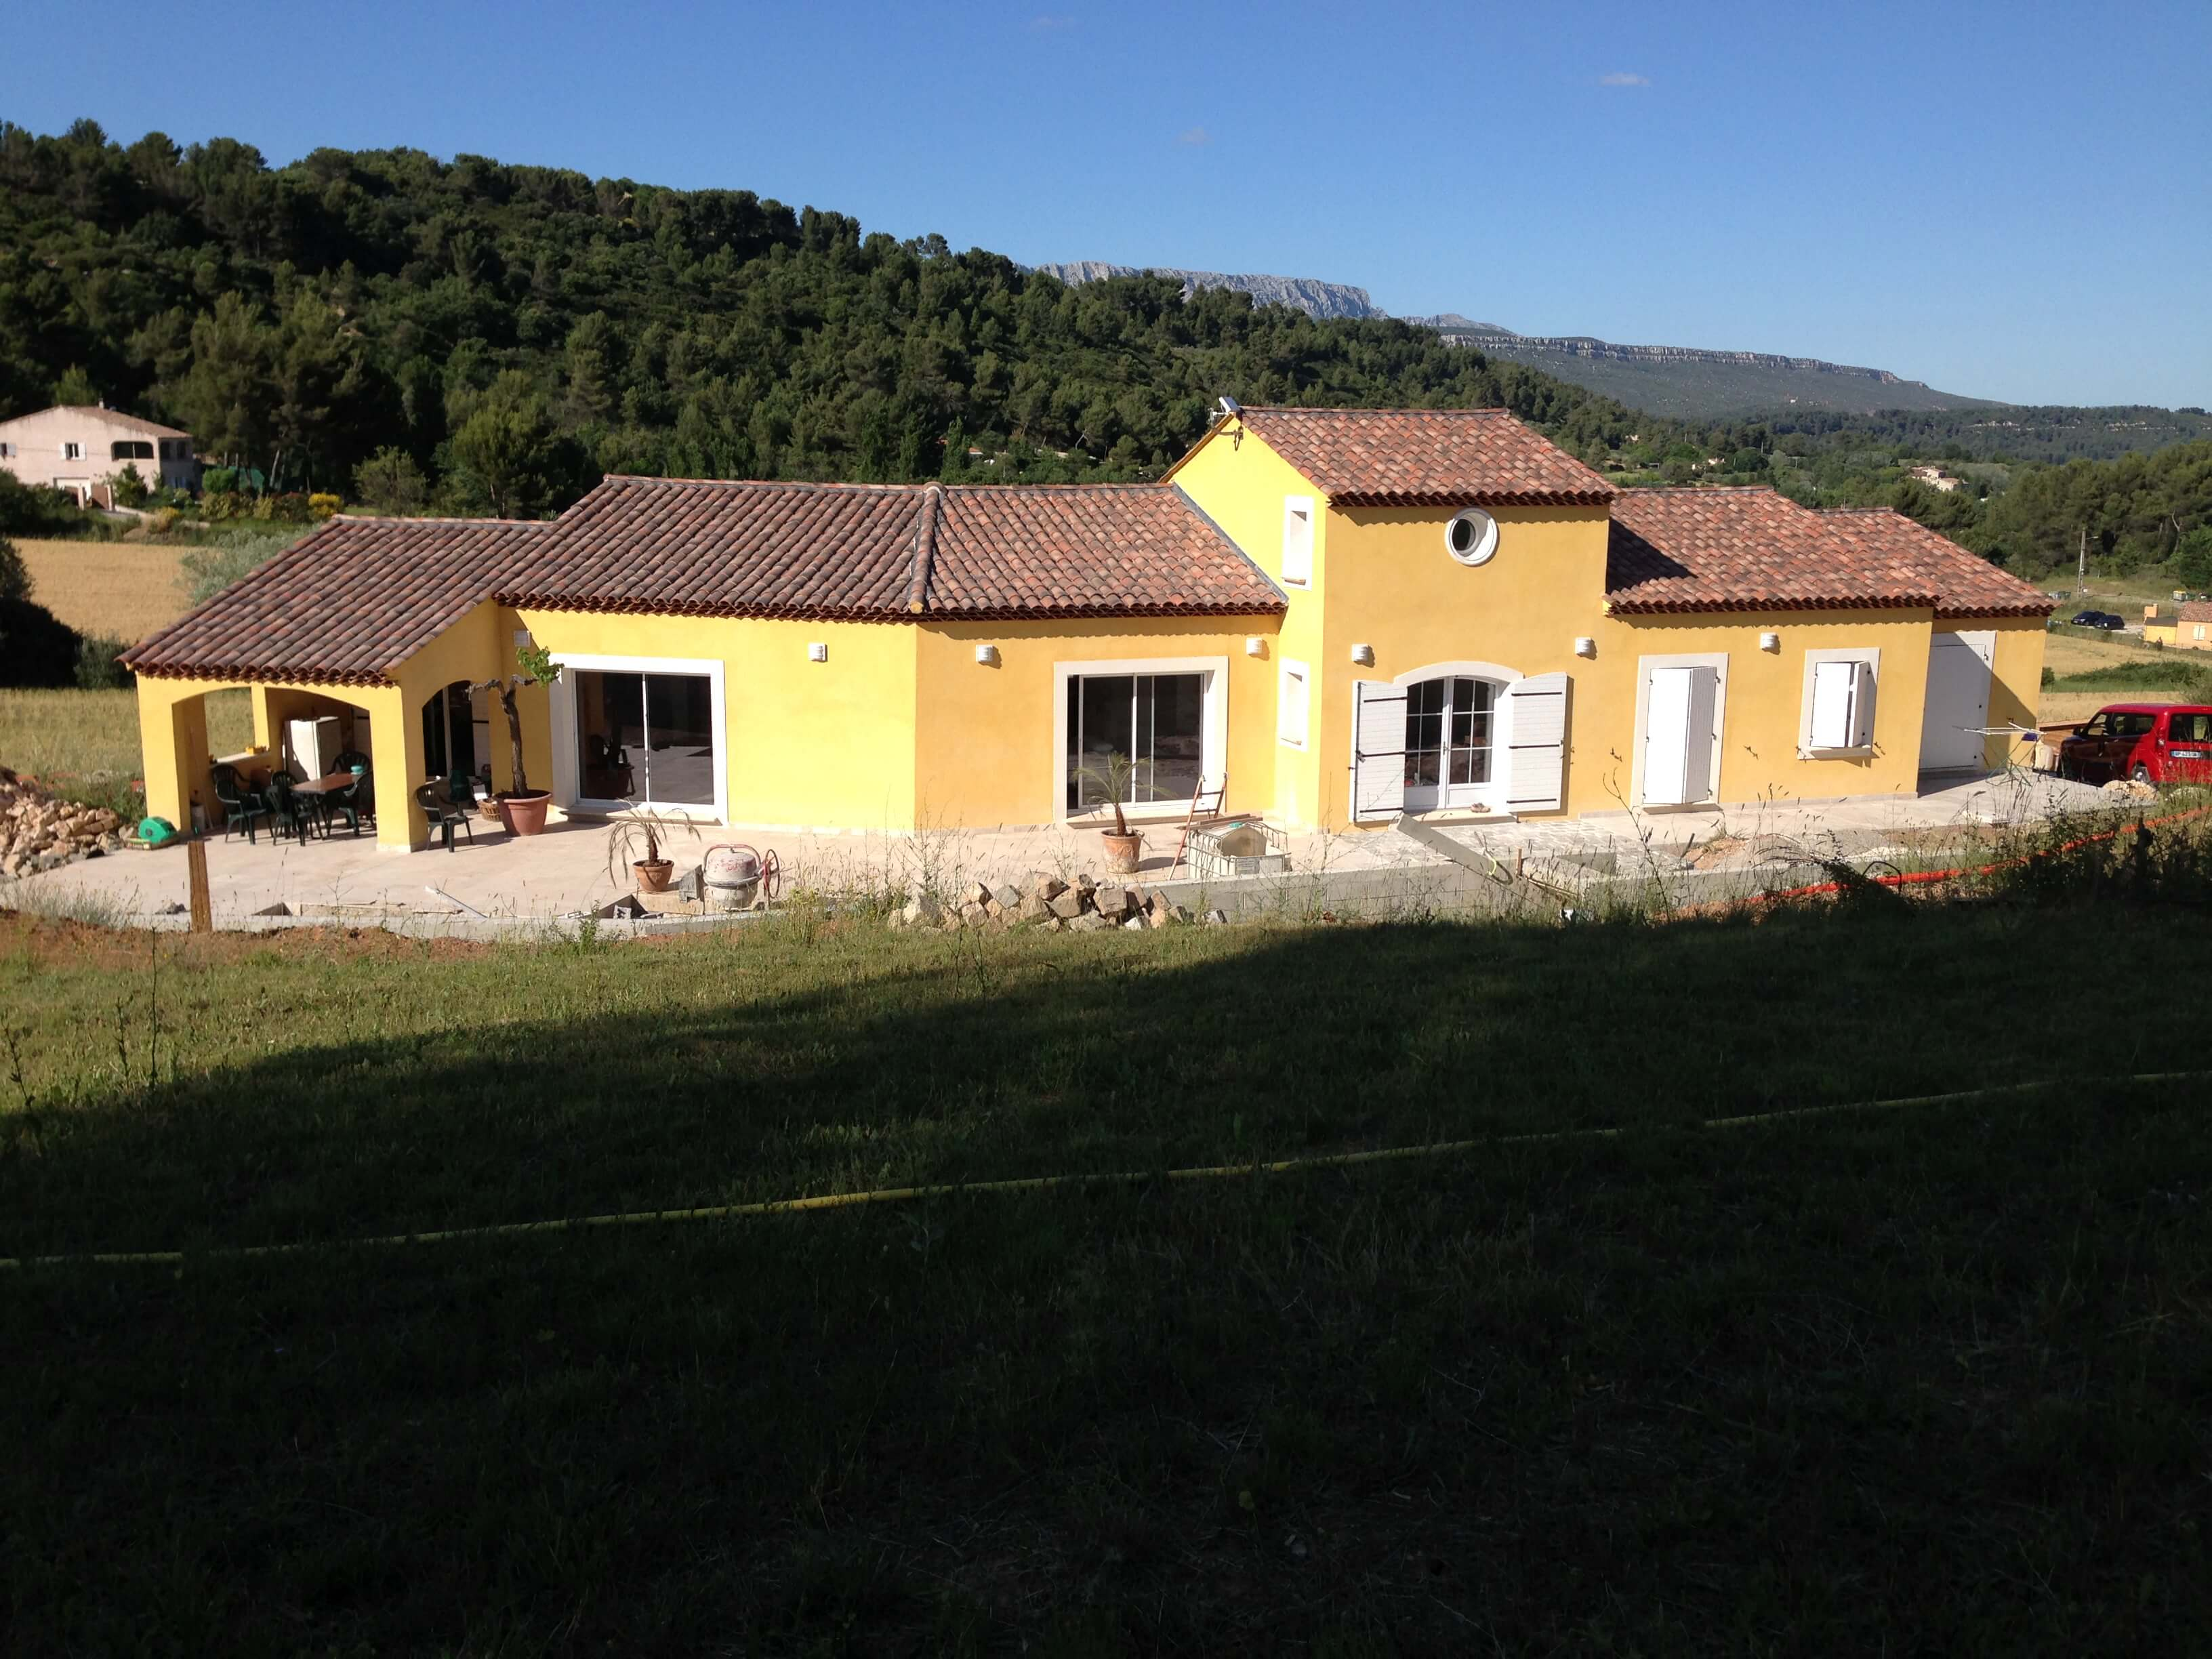 Jhs constructeur de maison r novation et couverture for Constructeur renovation maison